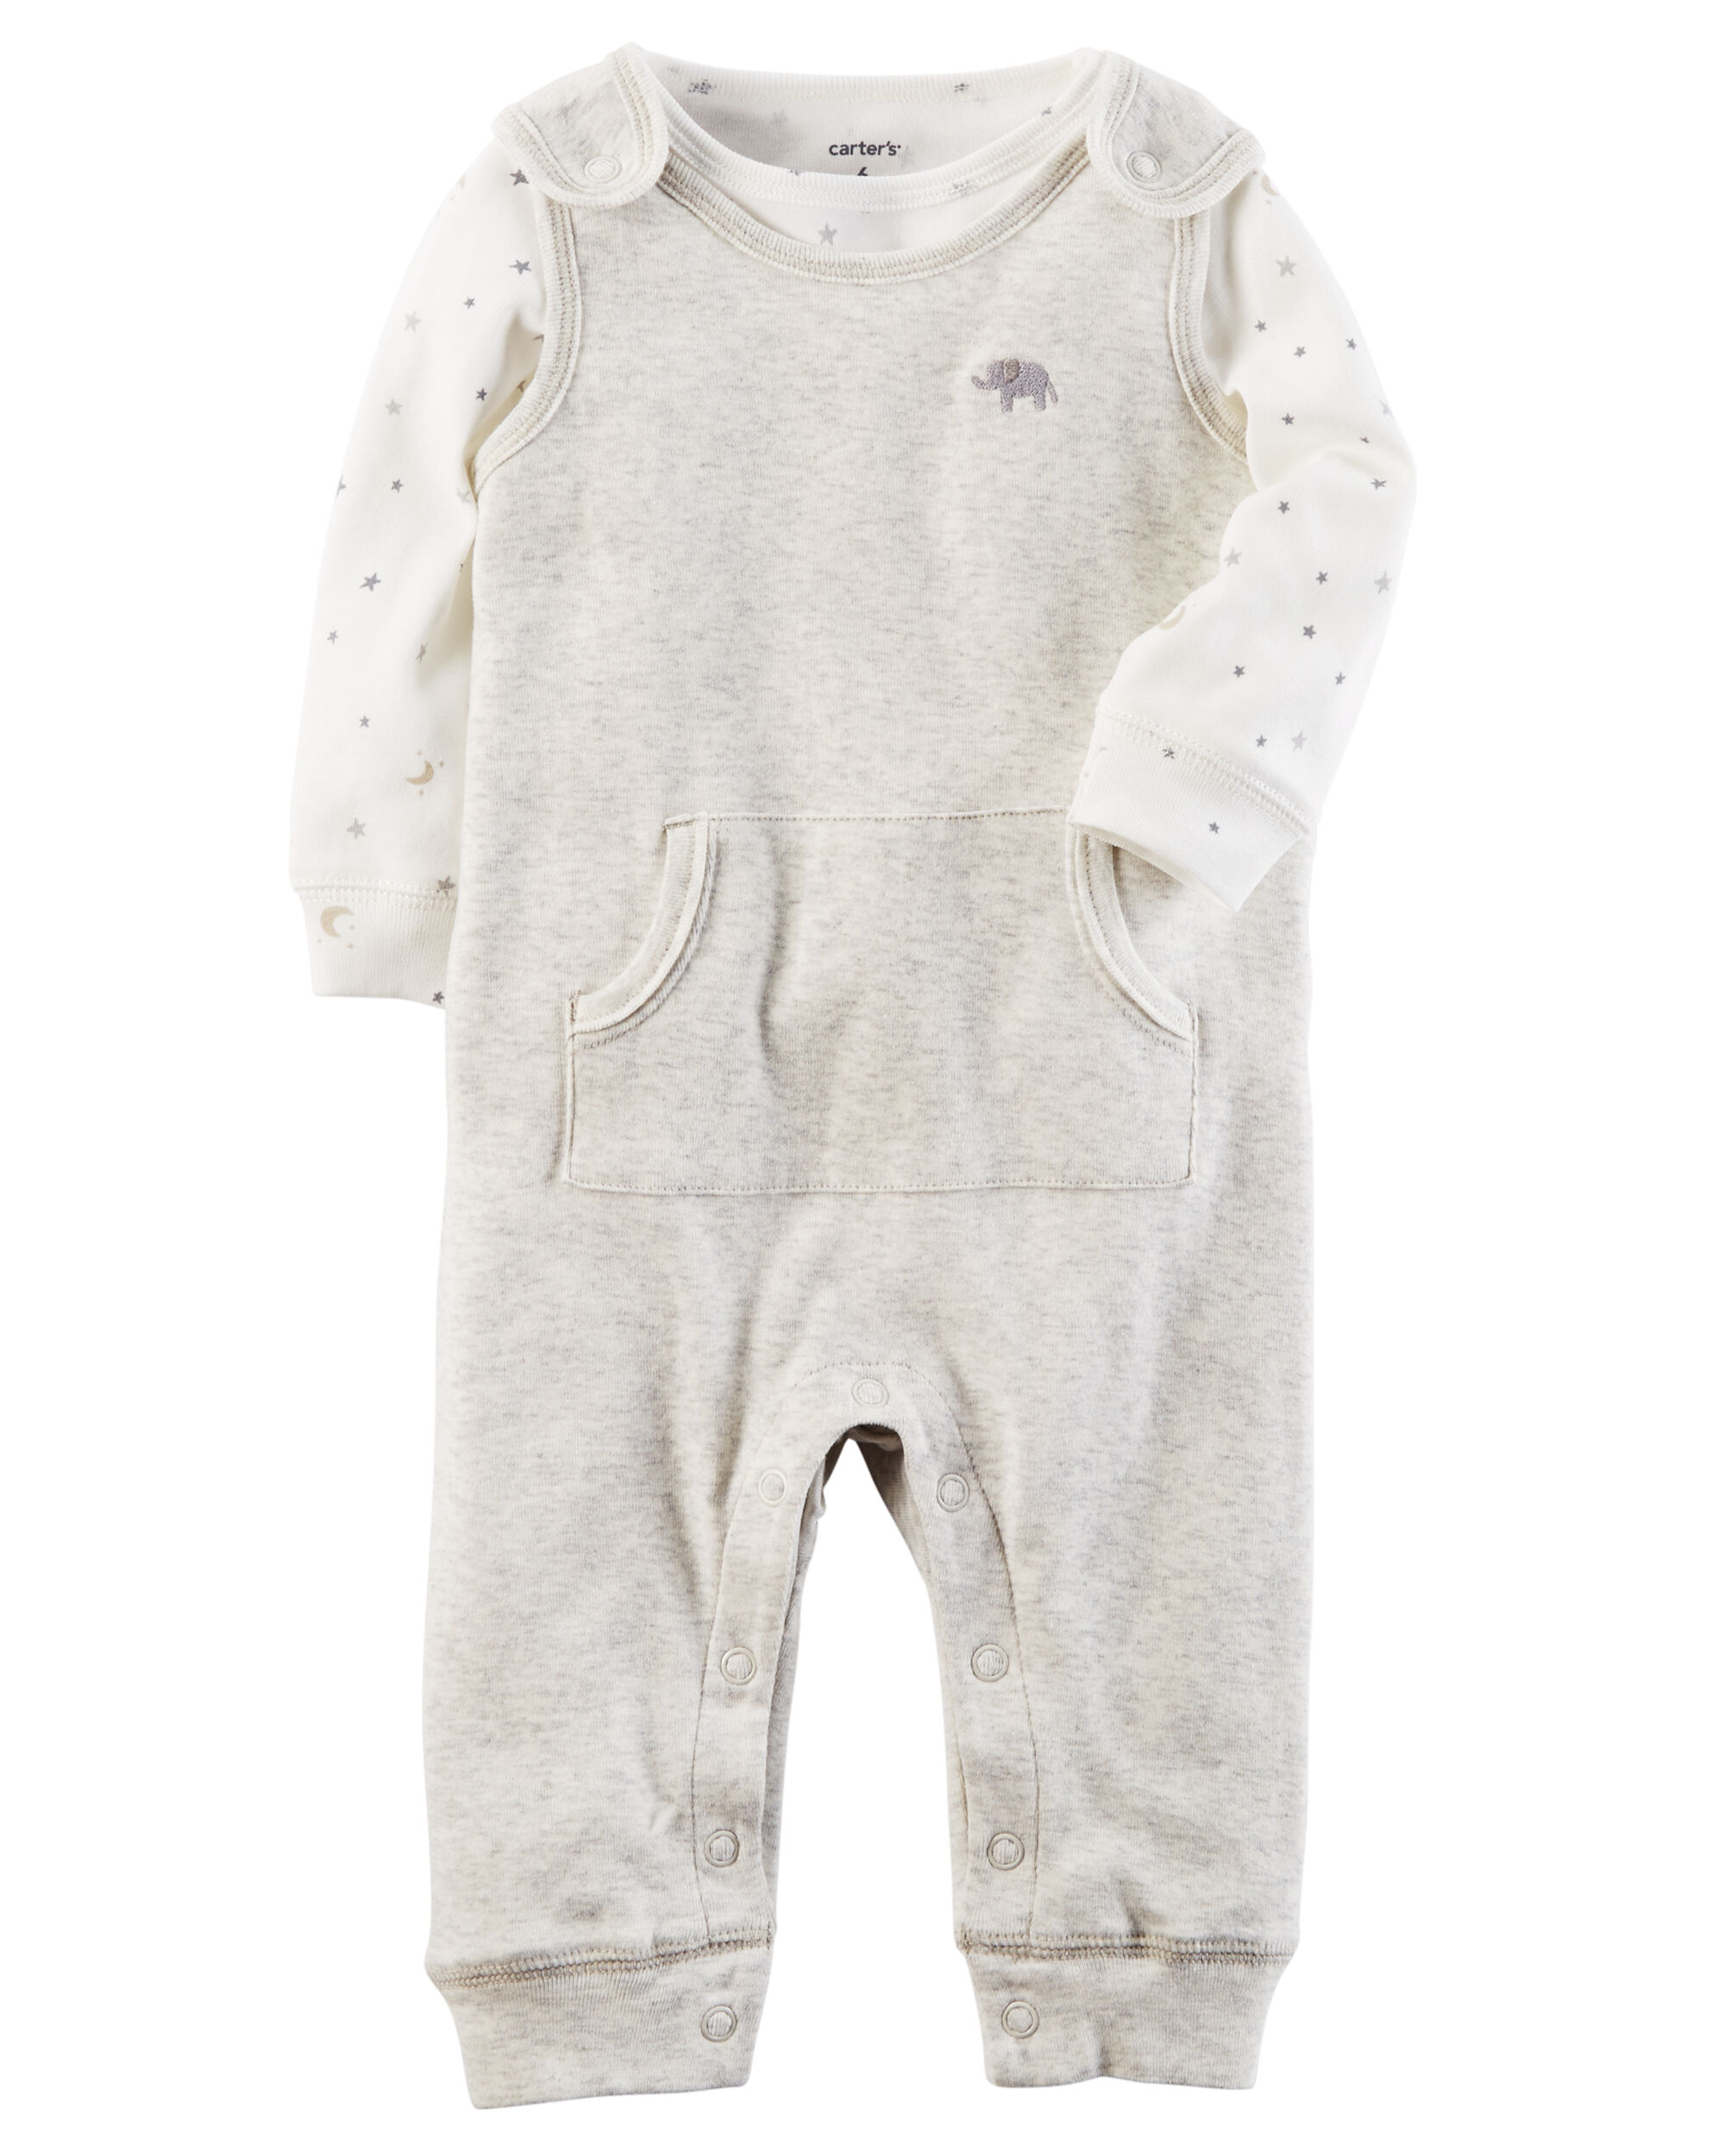 2 Piece Babysoft Coverall Set